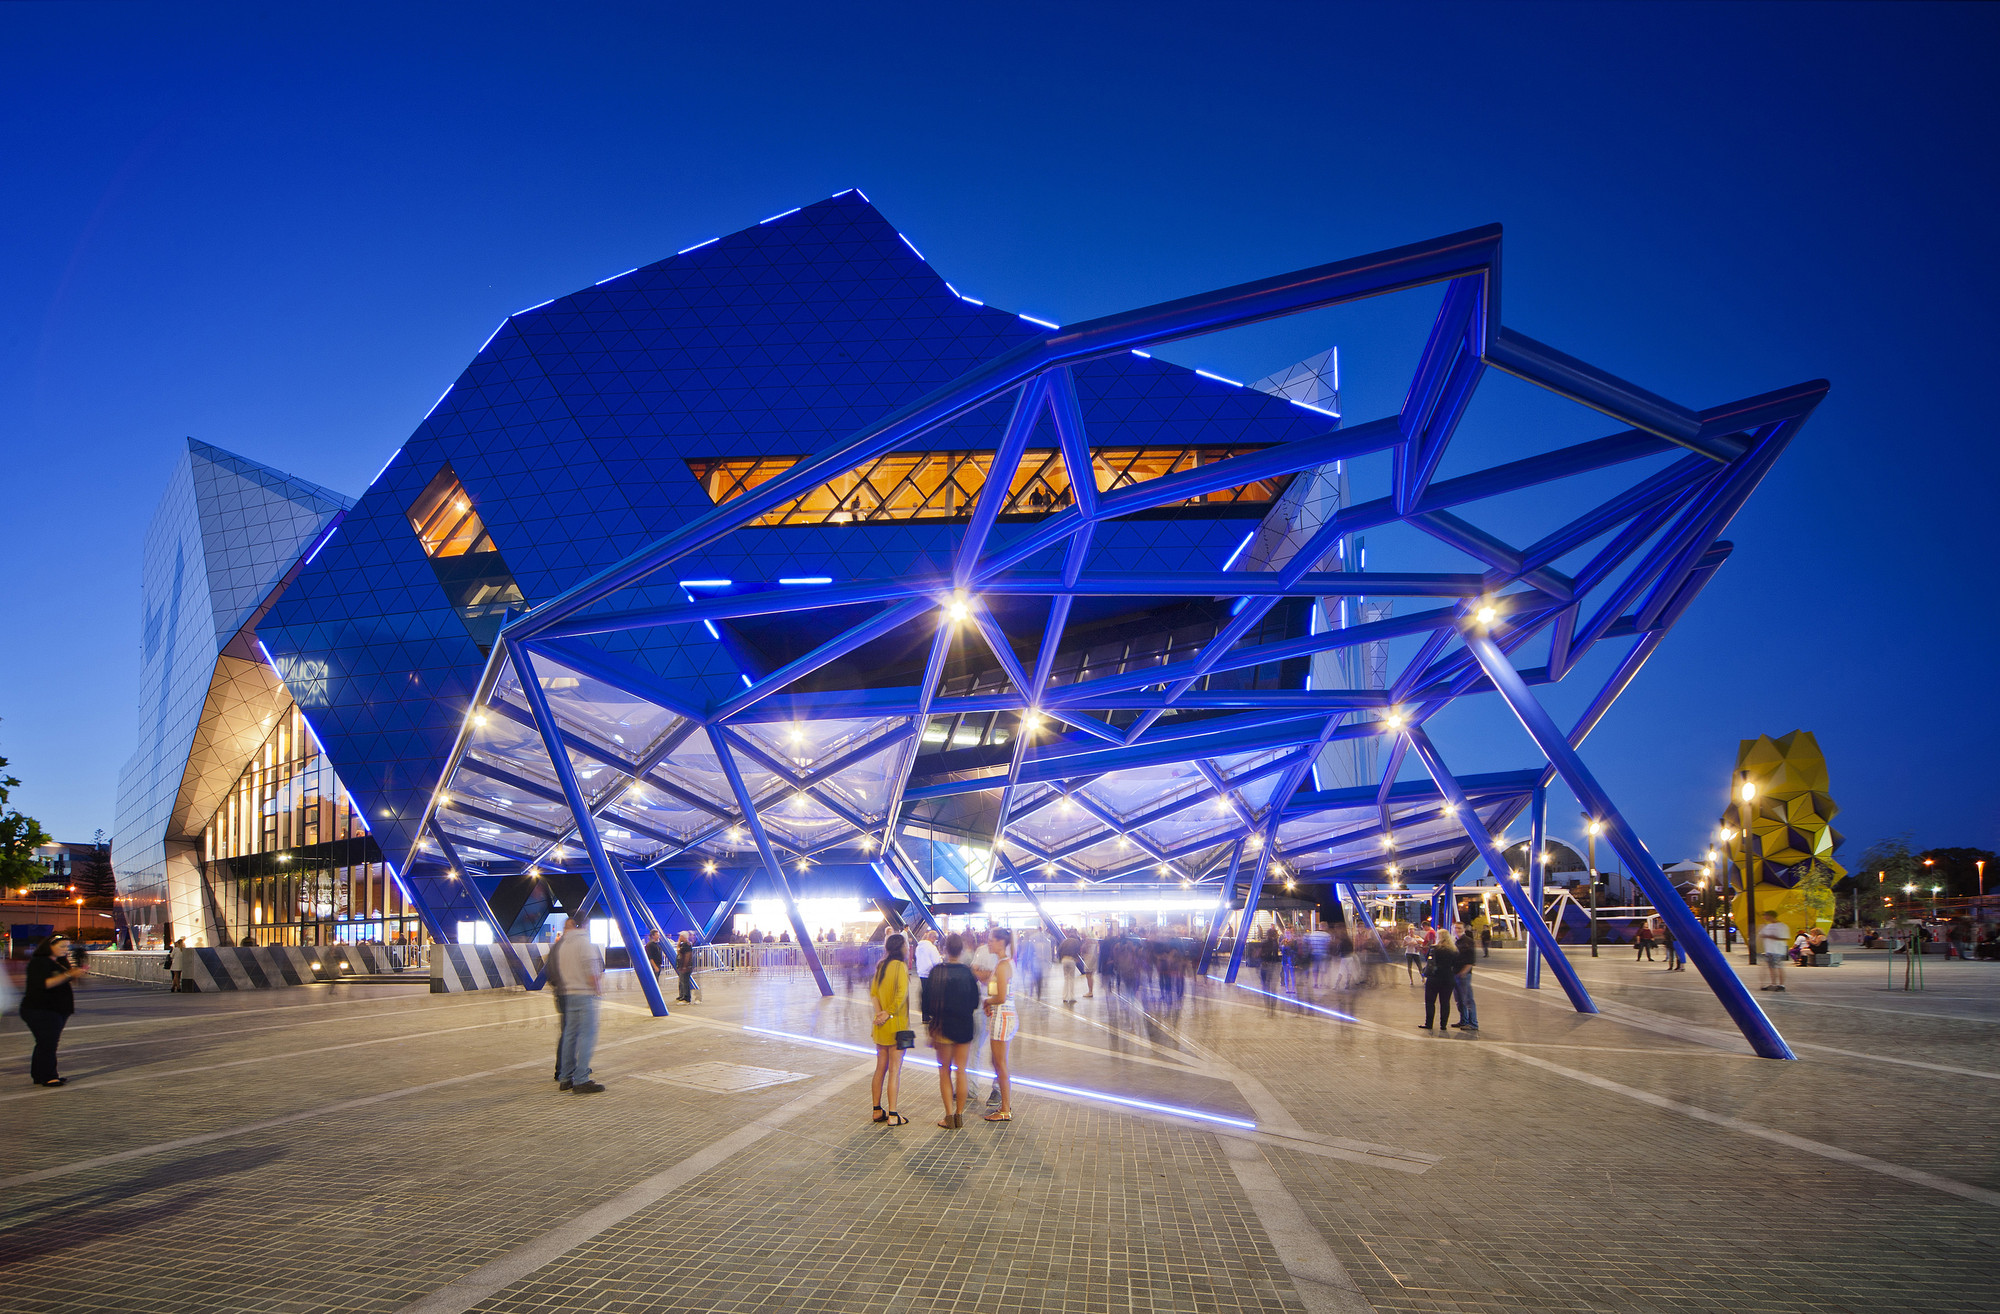 Perth arena arm architecture ccn archdaily for Australian architecture